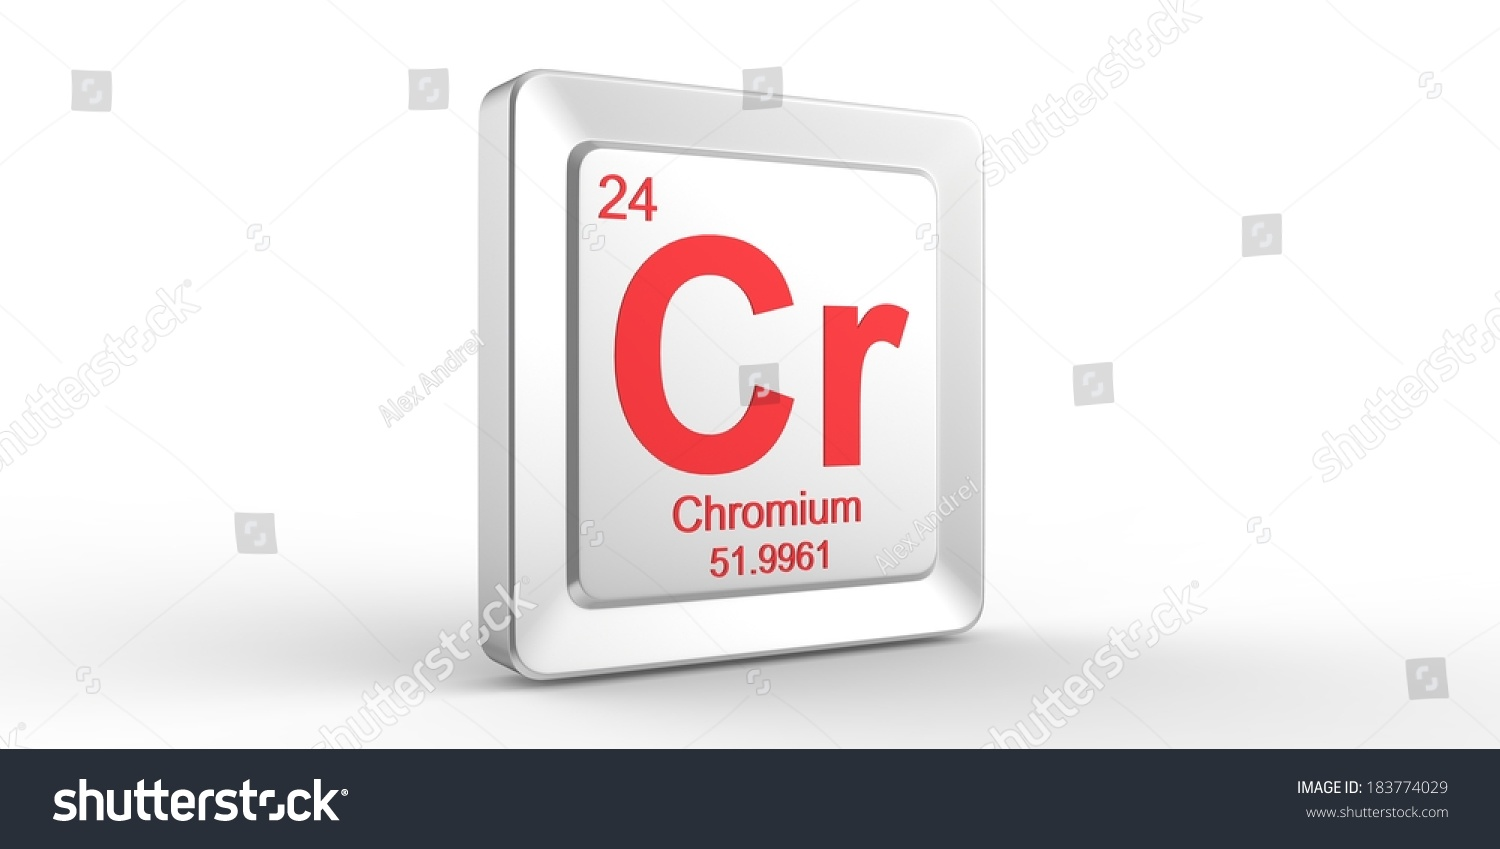 Cr symbol 24 material chromium chemical stock illustration cr symbol 24 material for chromium chemical element of the periodic table buycottarizona